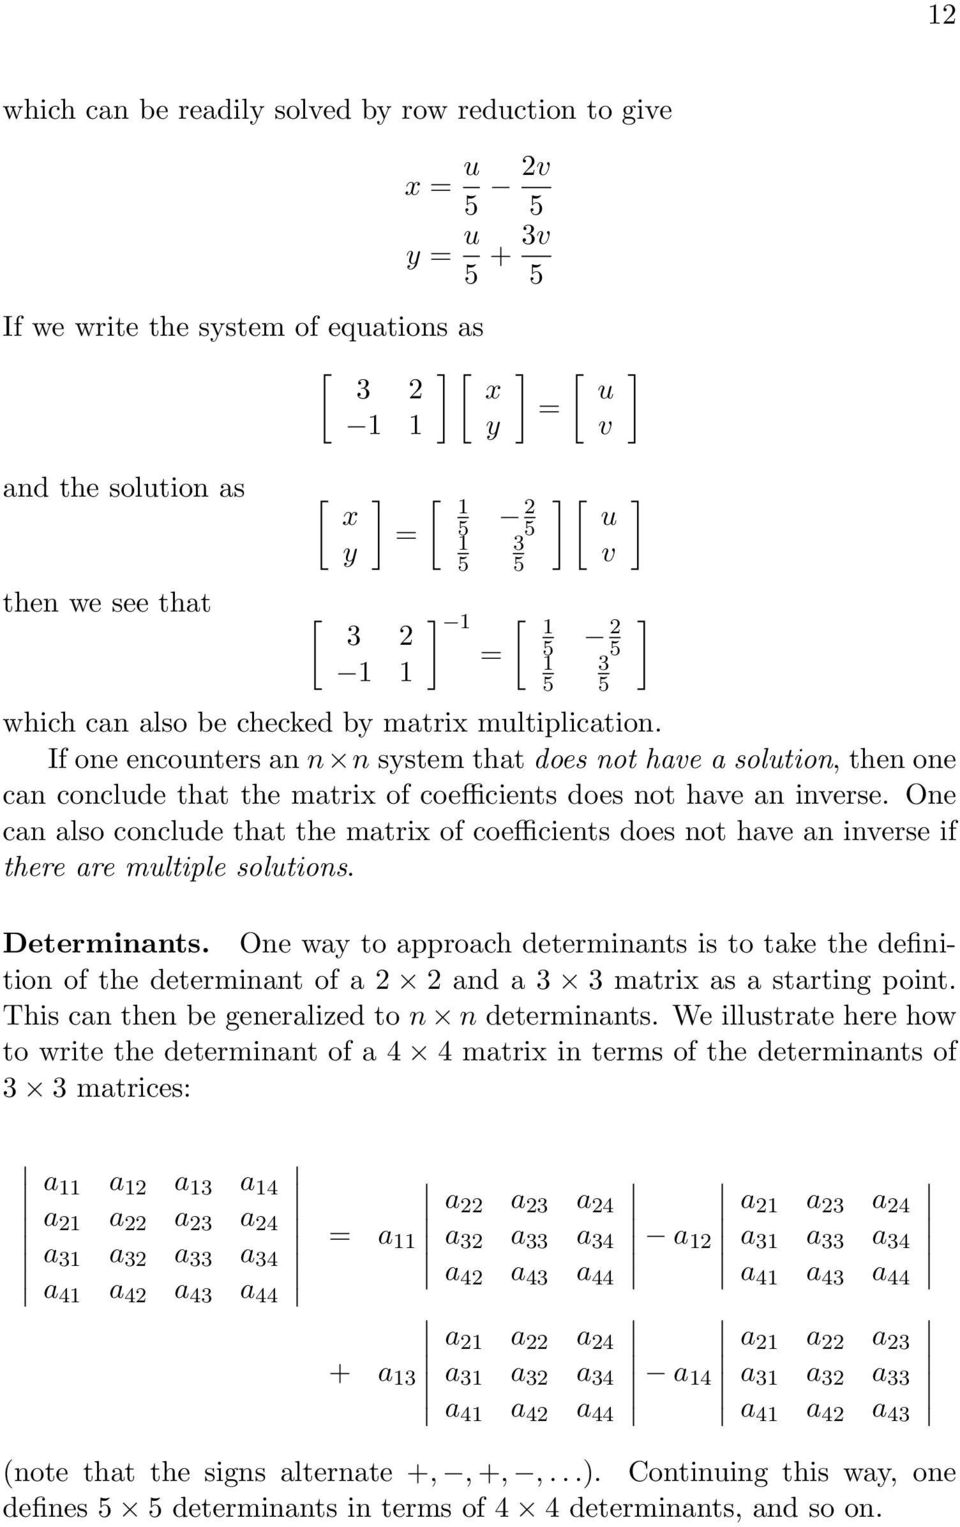 an inverse One can also conclude that the matrix of coefficients does not have an inverse if there are multiple solutions Determinants One way to approach determinants is to take the definition of